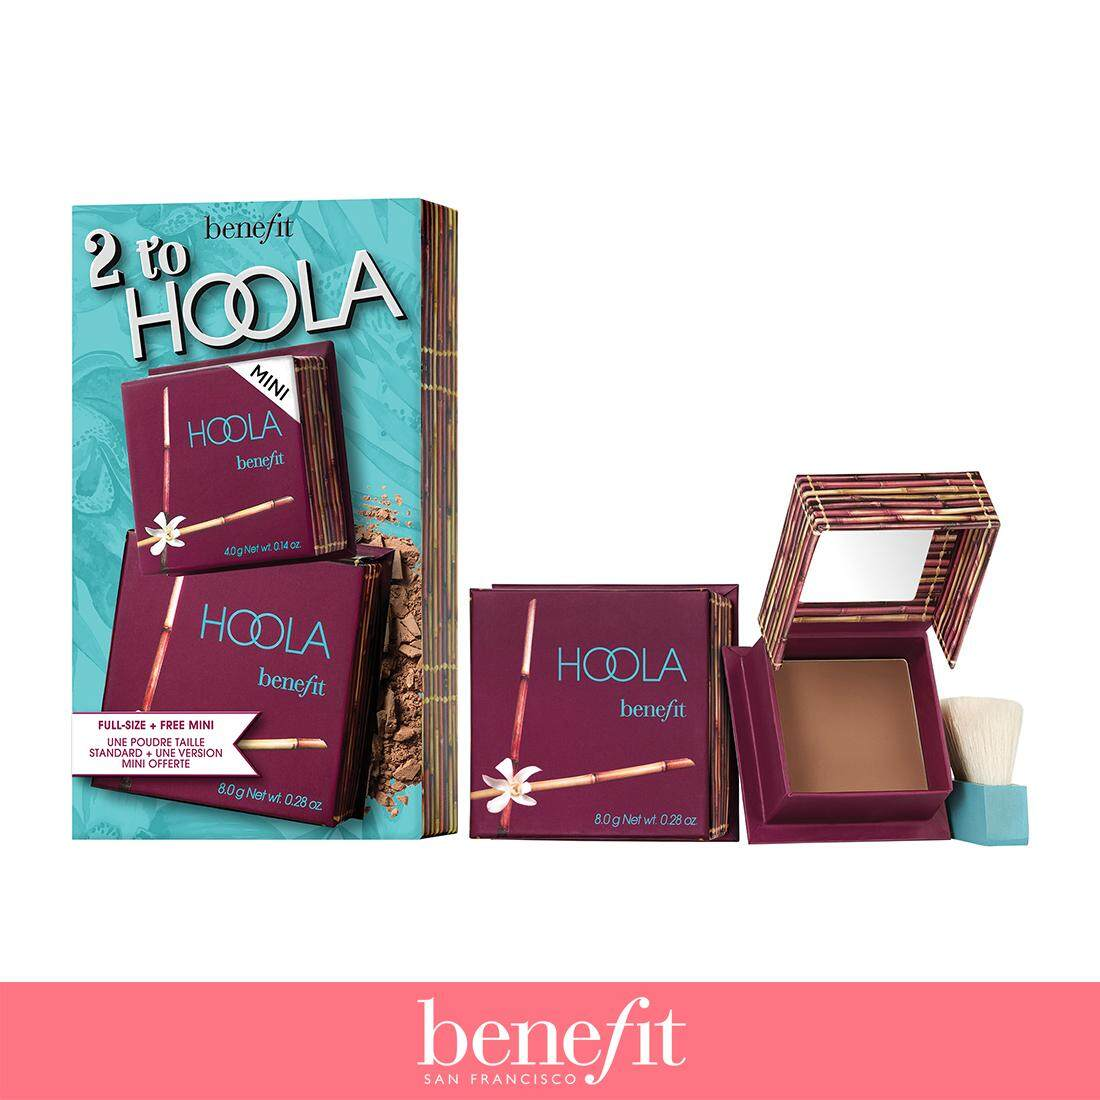 Benefit 2 To Hoola Matte Powder Bronzer Duo Worth Rm242 By Benefit Official Store